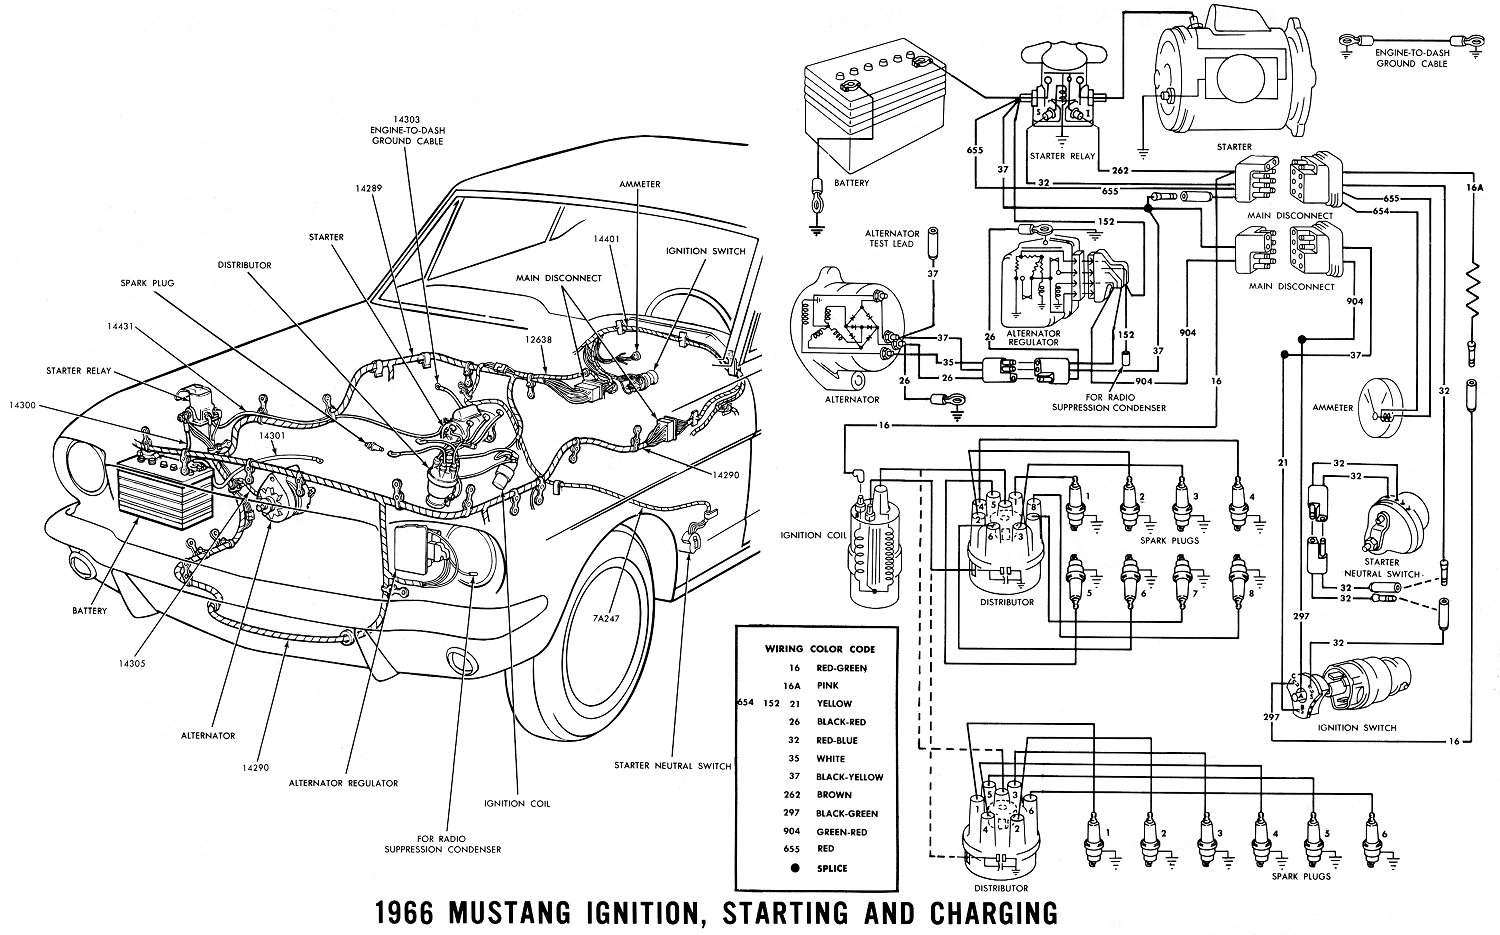 66ignit 1966 mustang wiring diagrams average joe restoration 1965 mustang wiring harness diagram at fashall.co